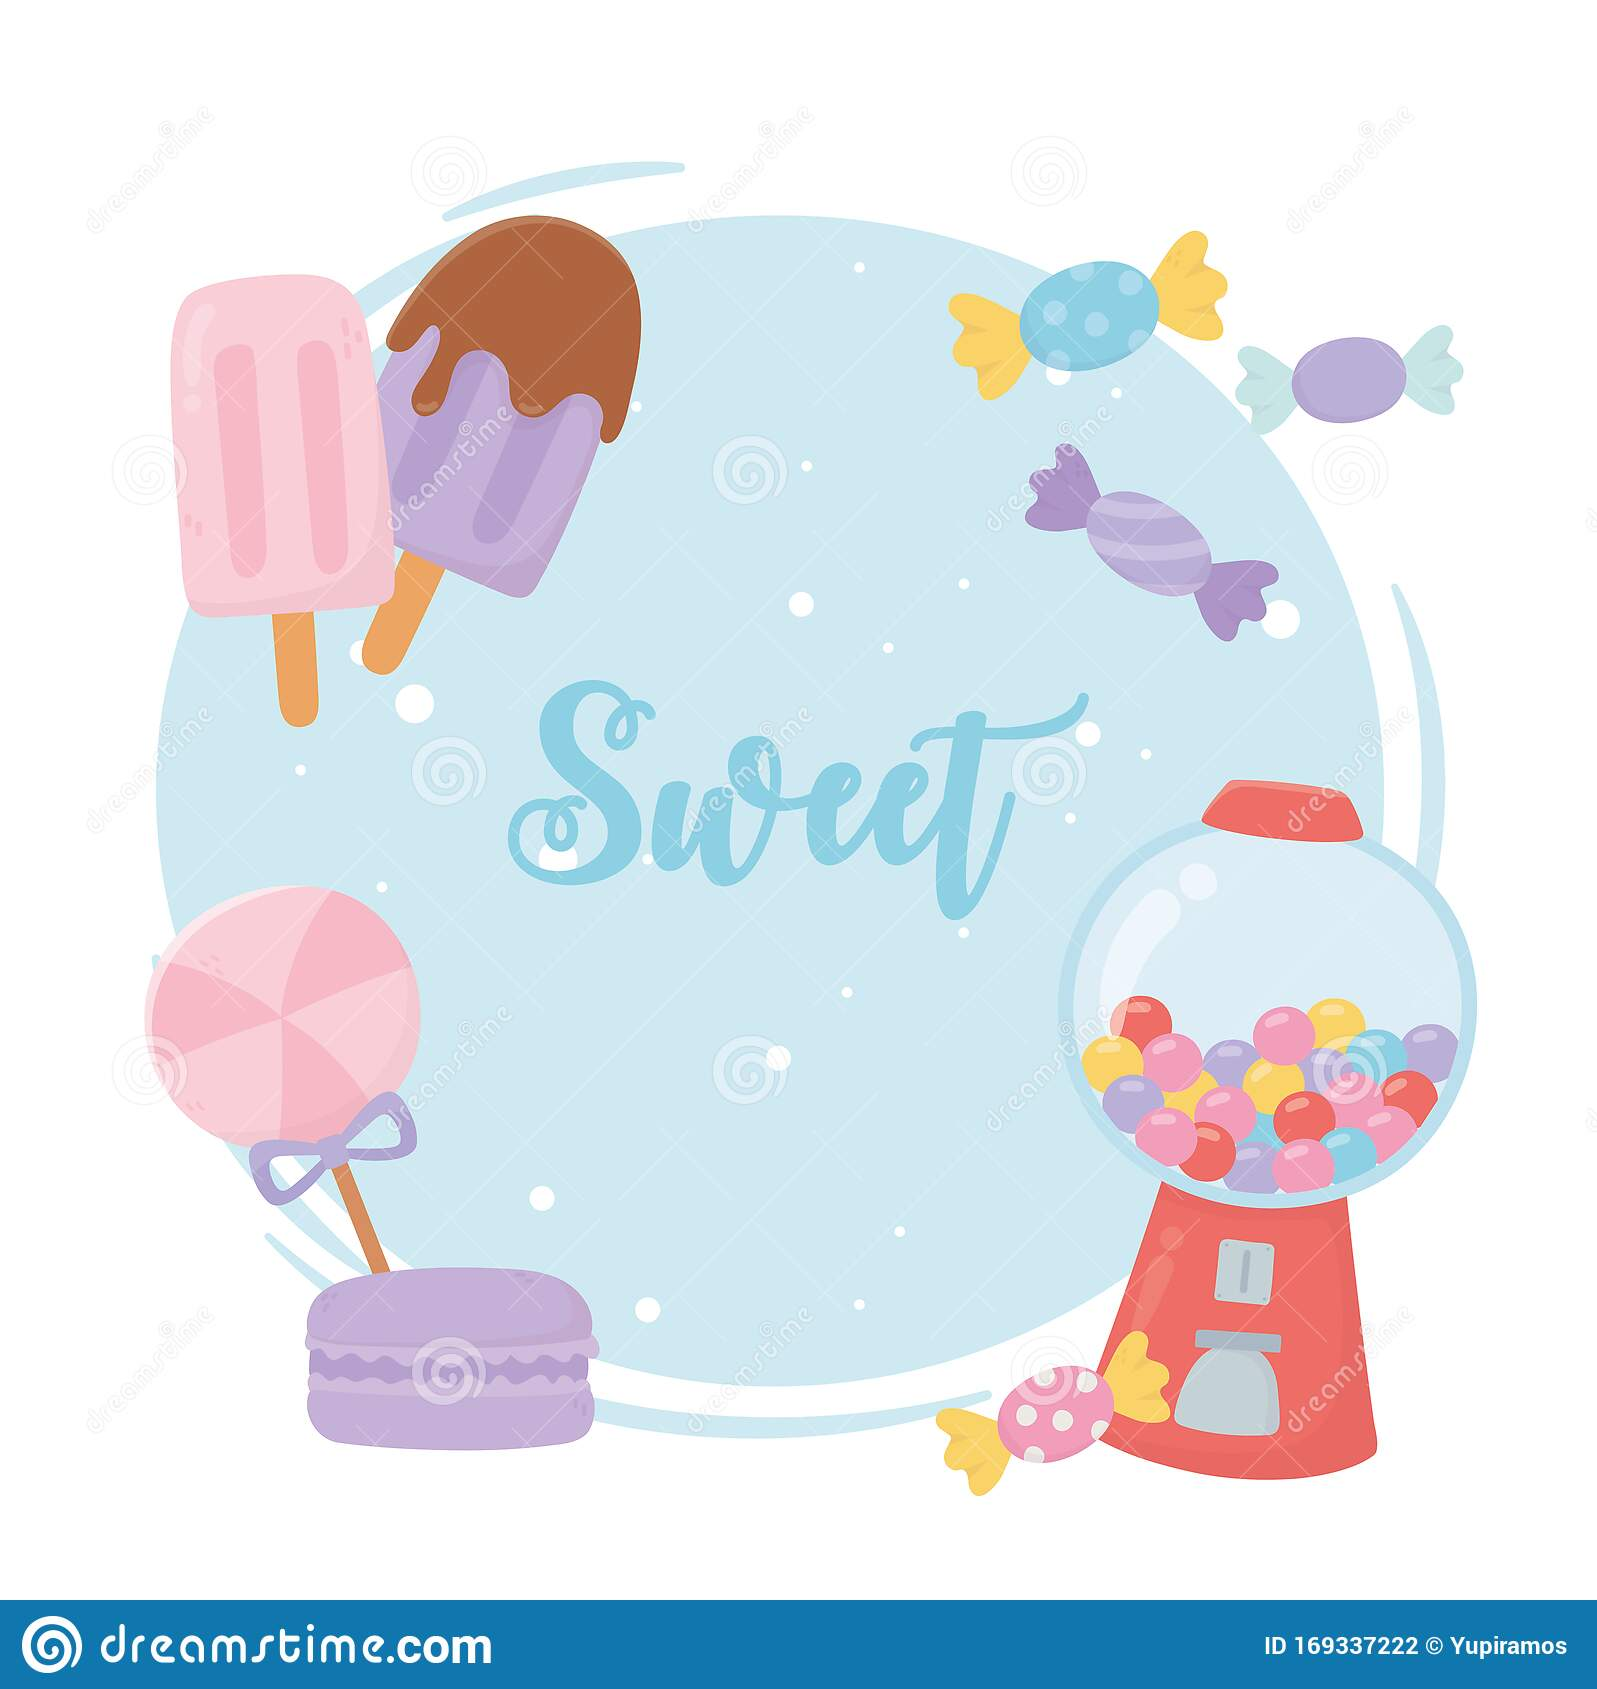 Bubble Cartoon png download - 960*720 - Free Transparent Chewing Gum png  Download. - CleanPNG / KissPNG